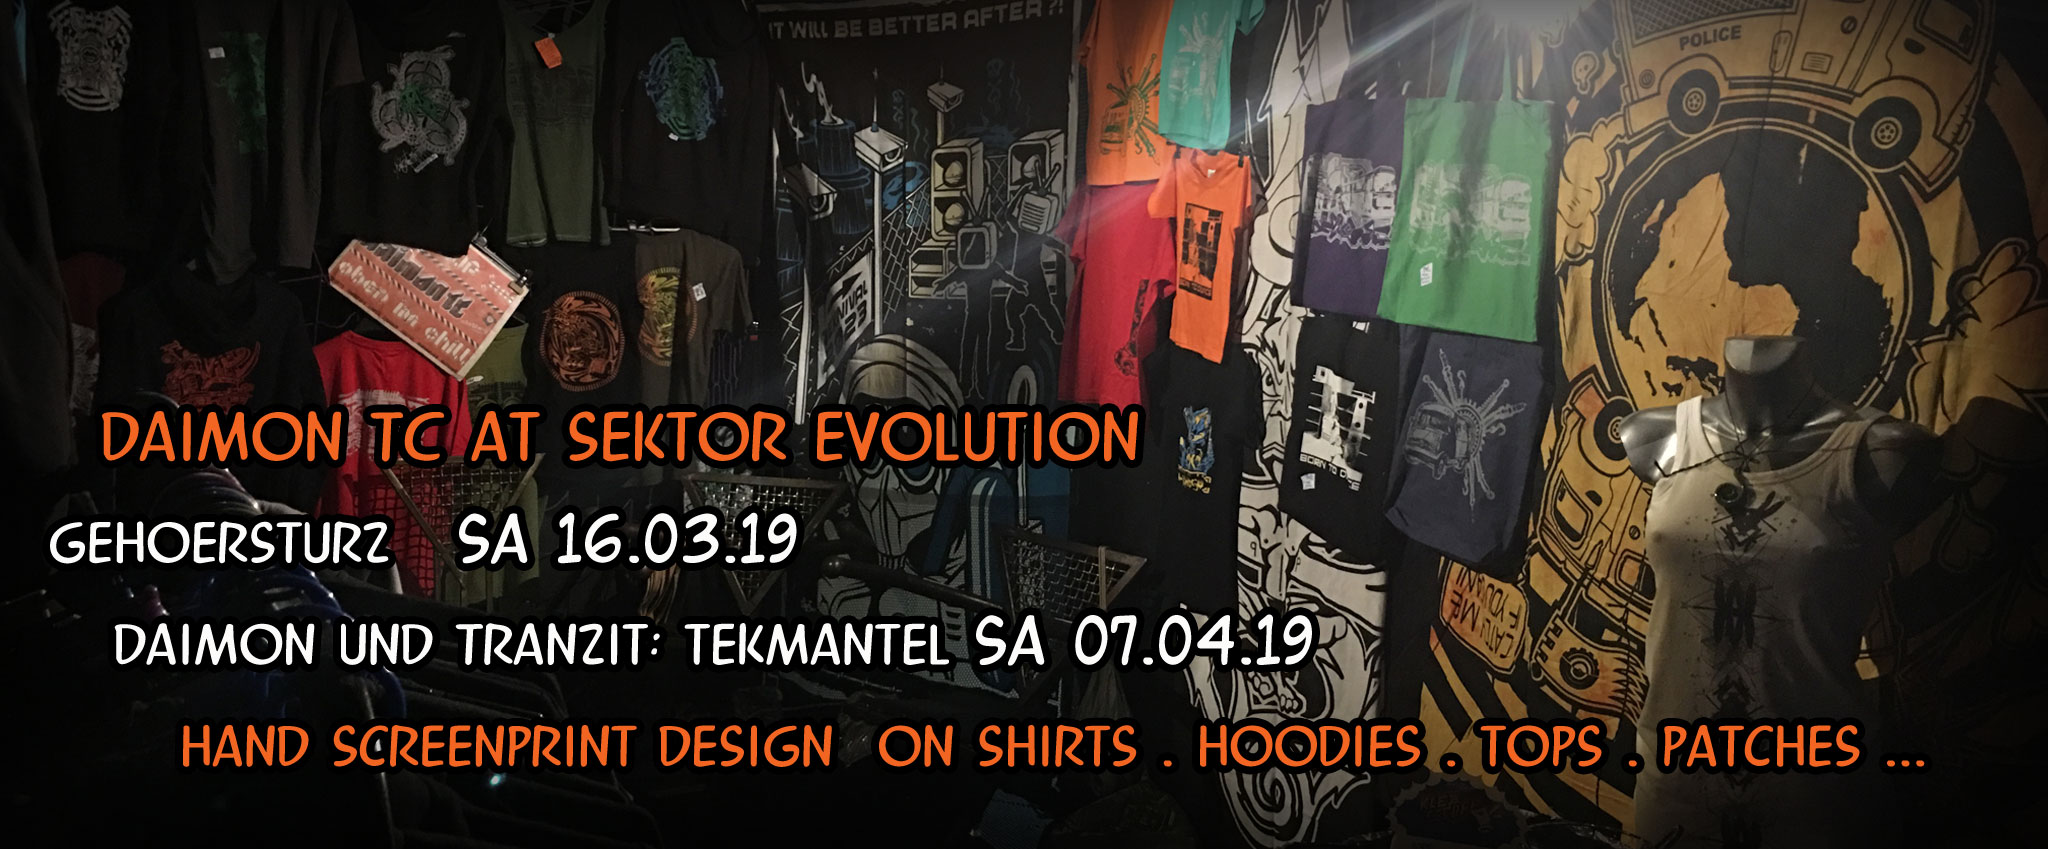 Shop Sektor Dates